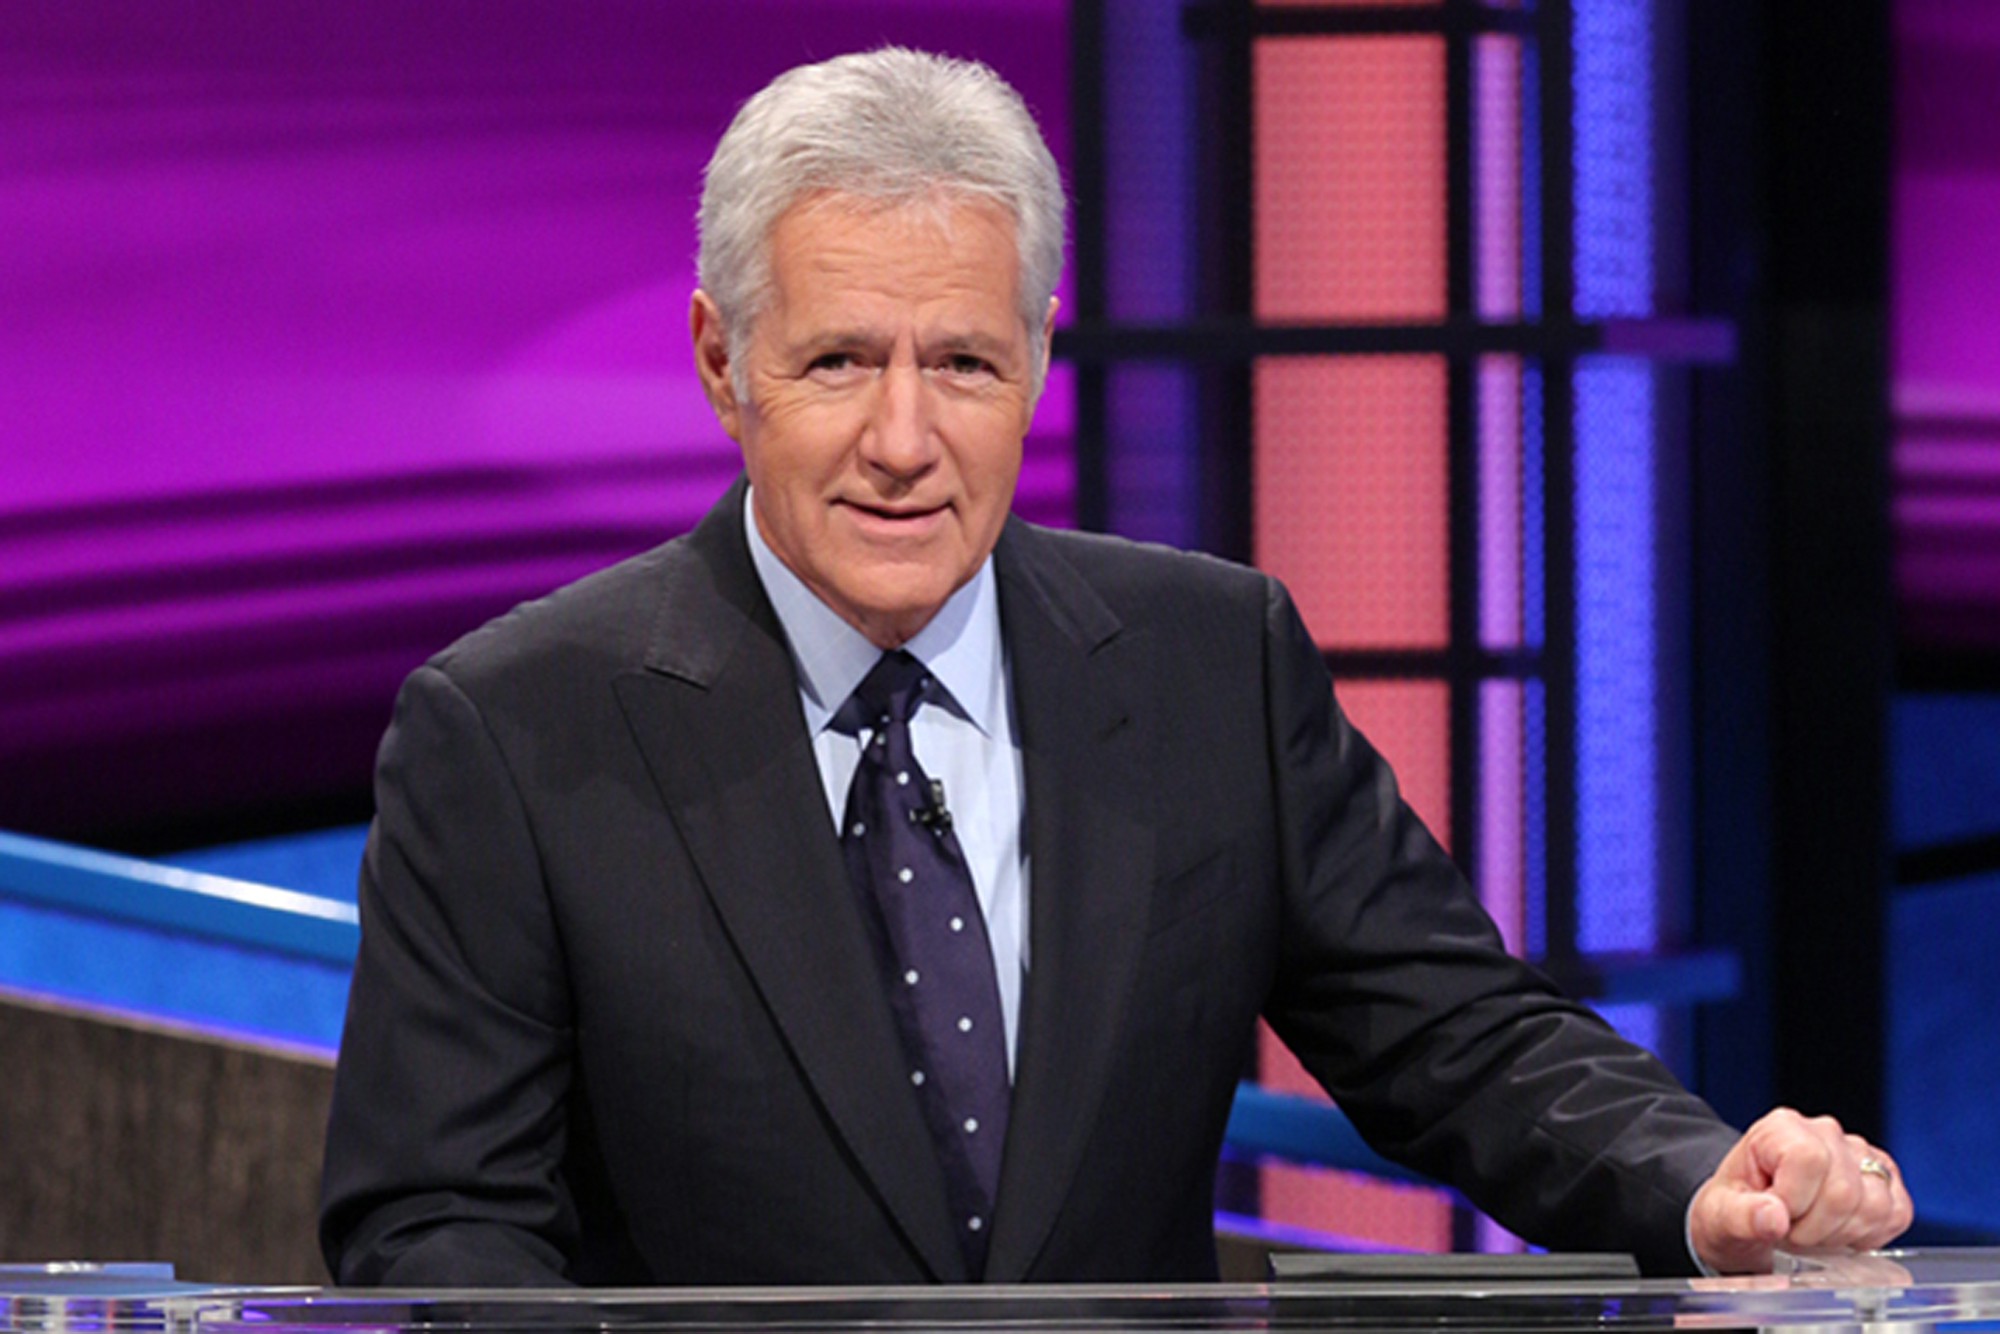 Alex Trebek Nationality, Ethnicity, Salary, and Net Worth